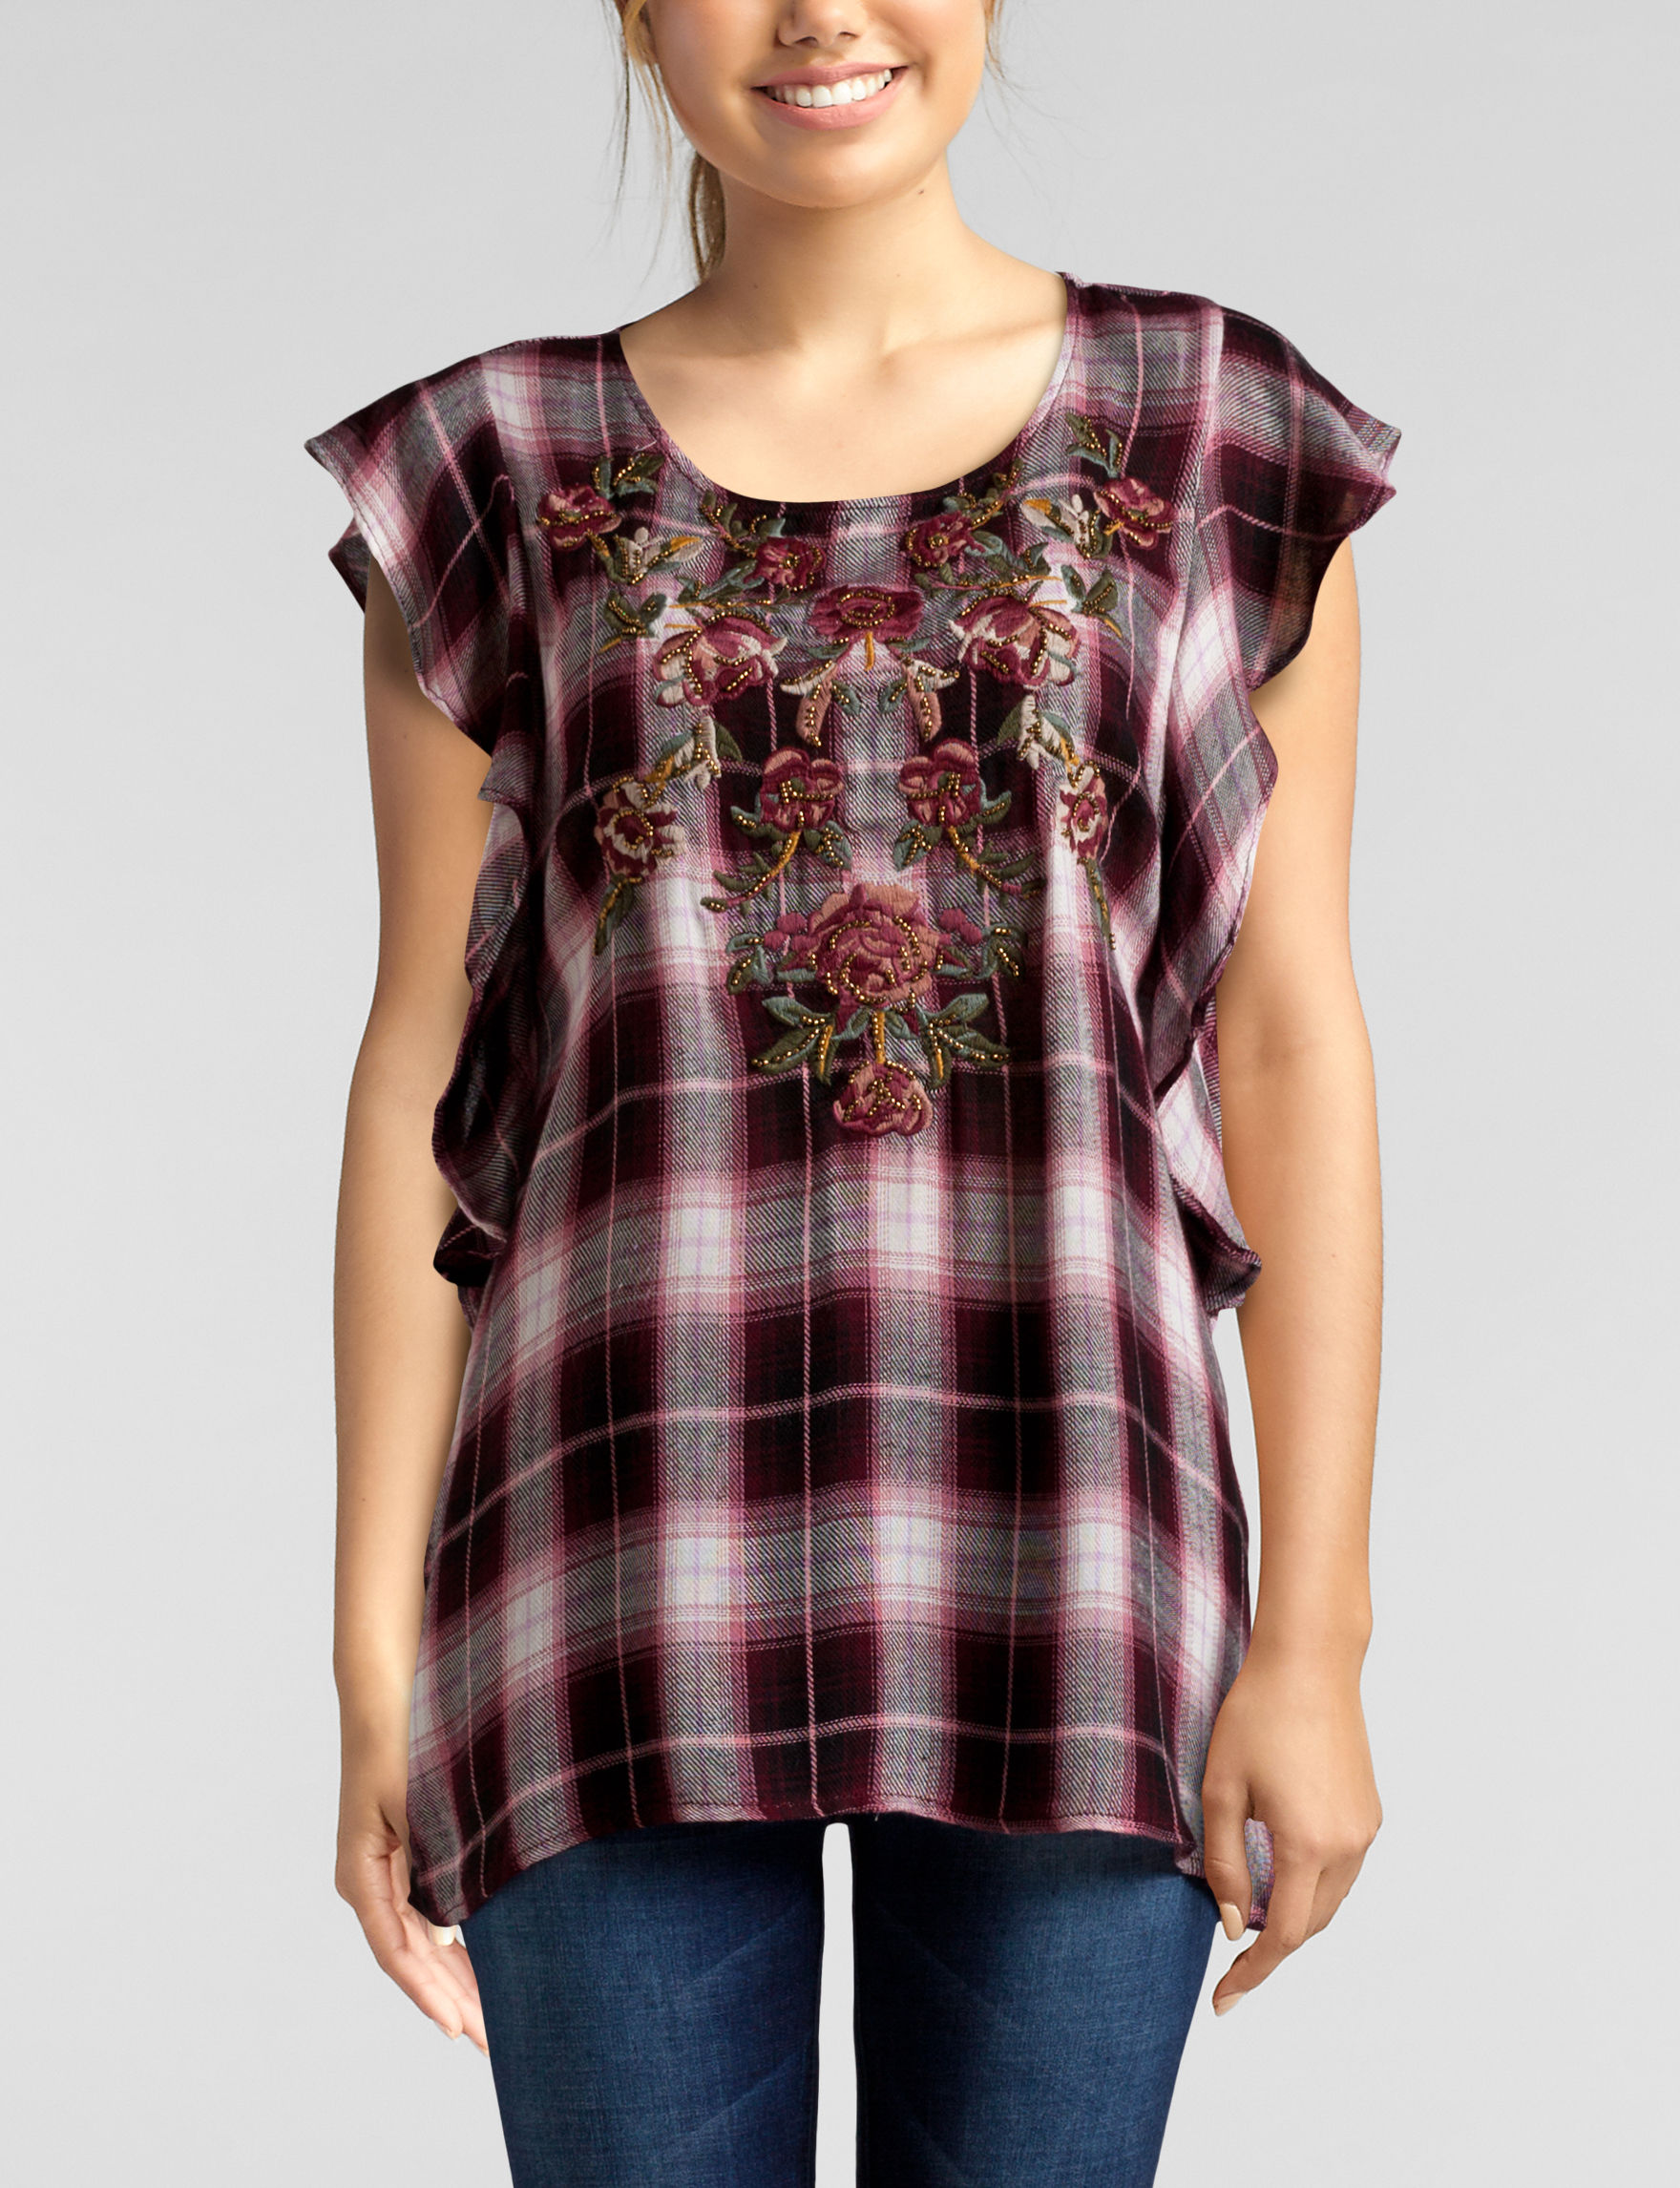 C + J Collections Burgundy Everyday & Casual Shirts & Blouses